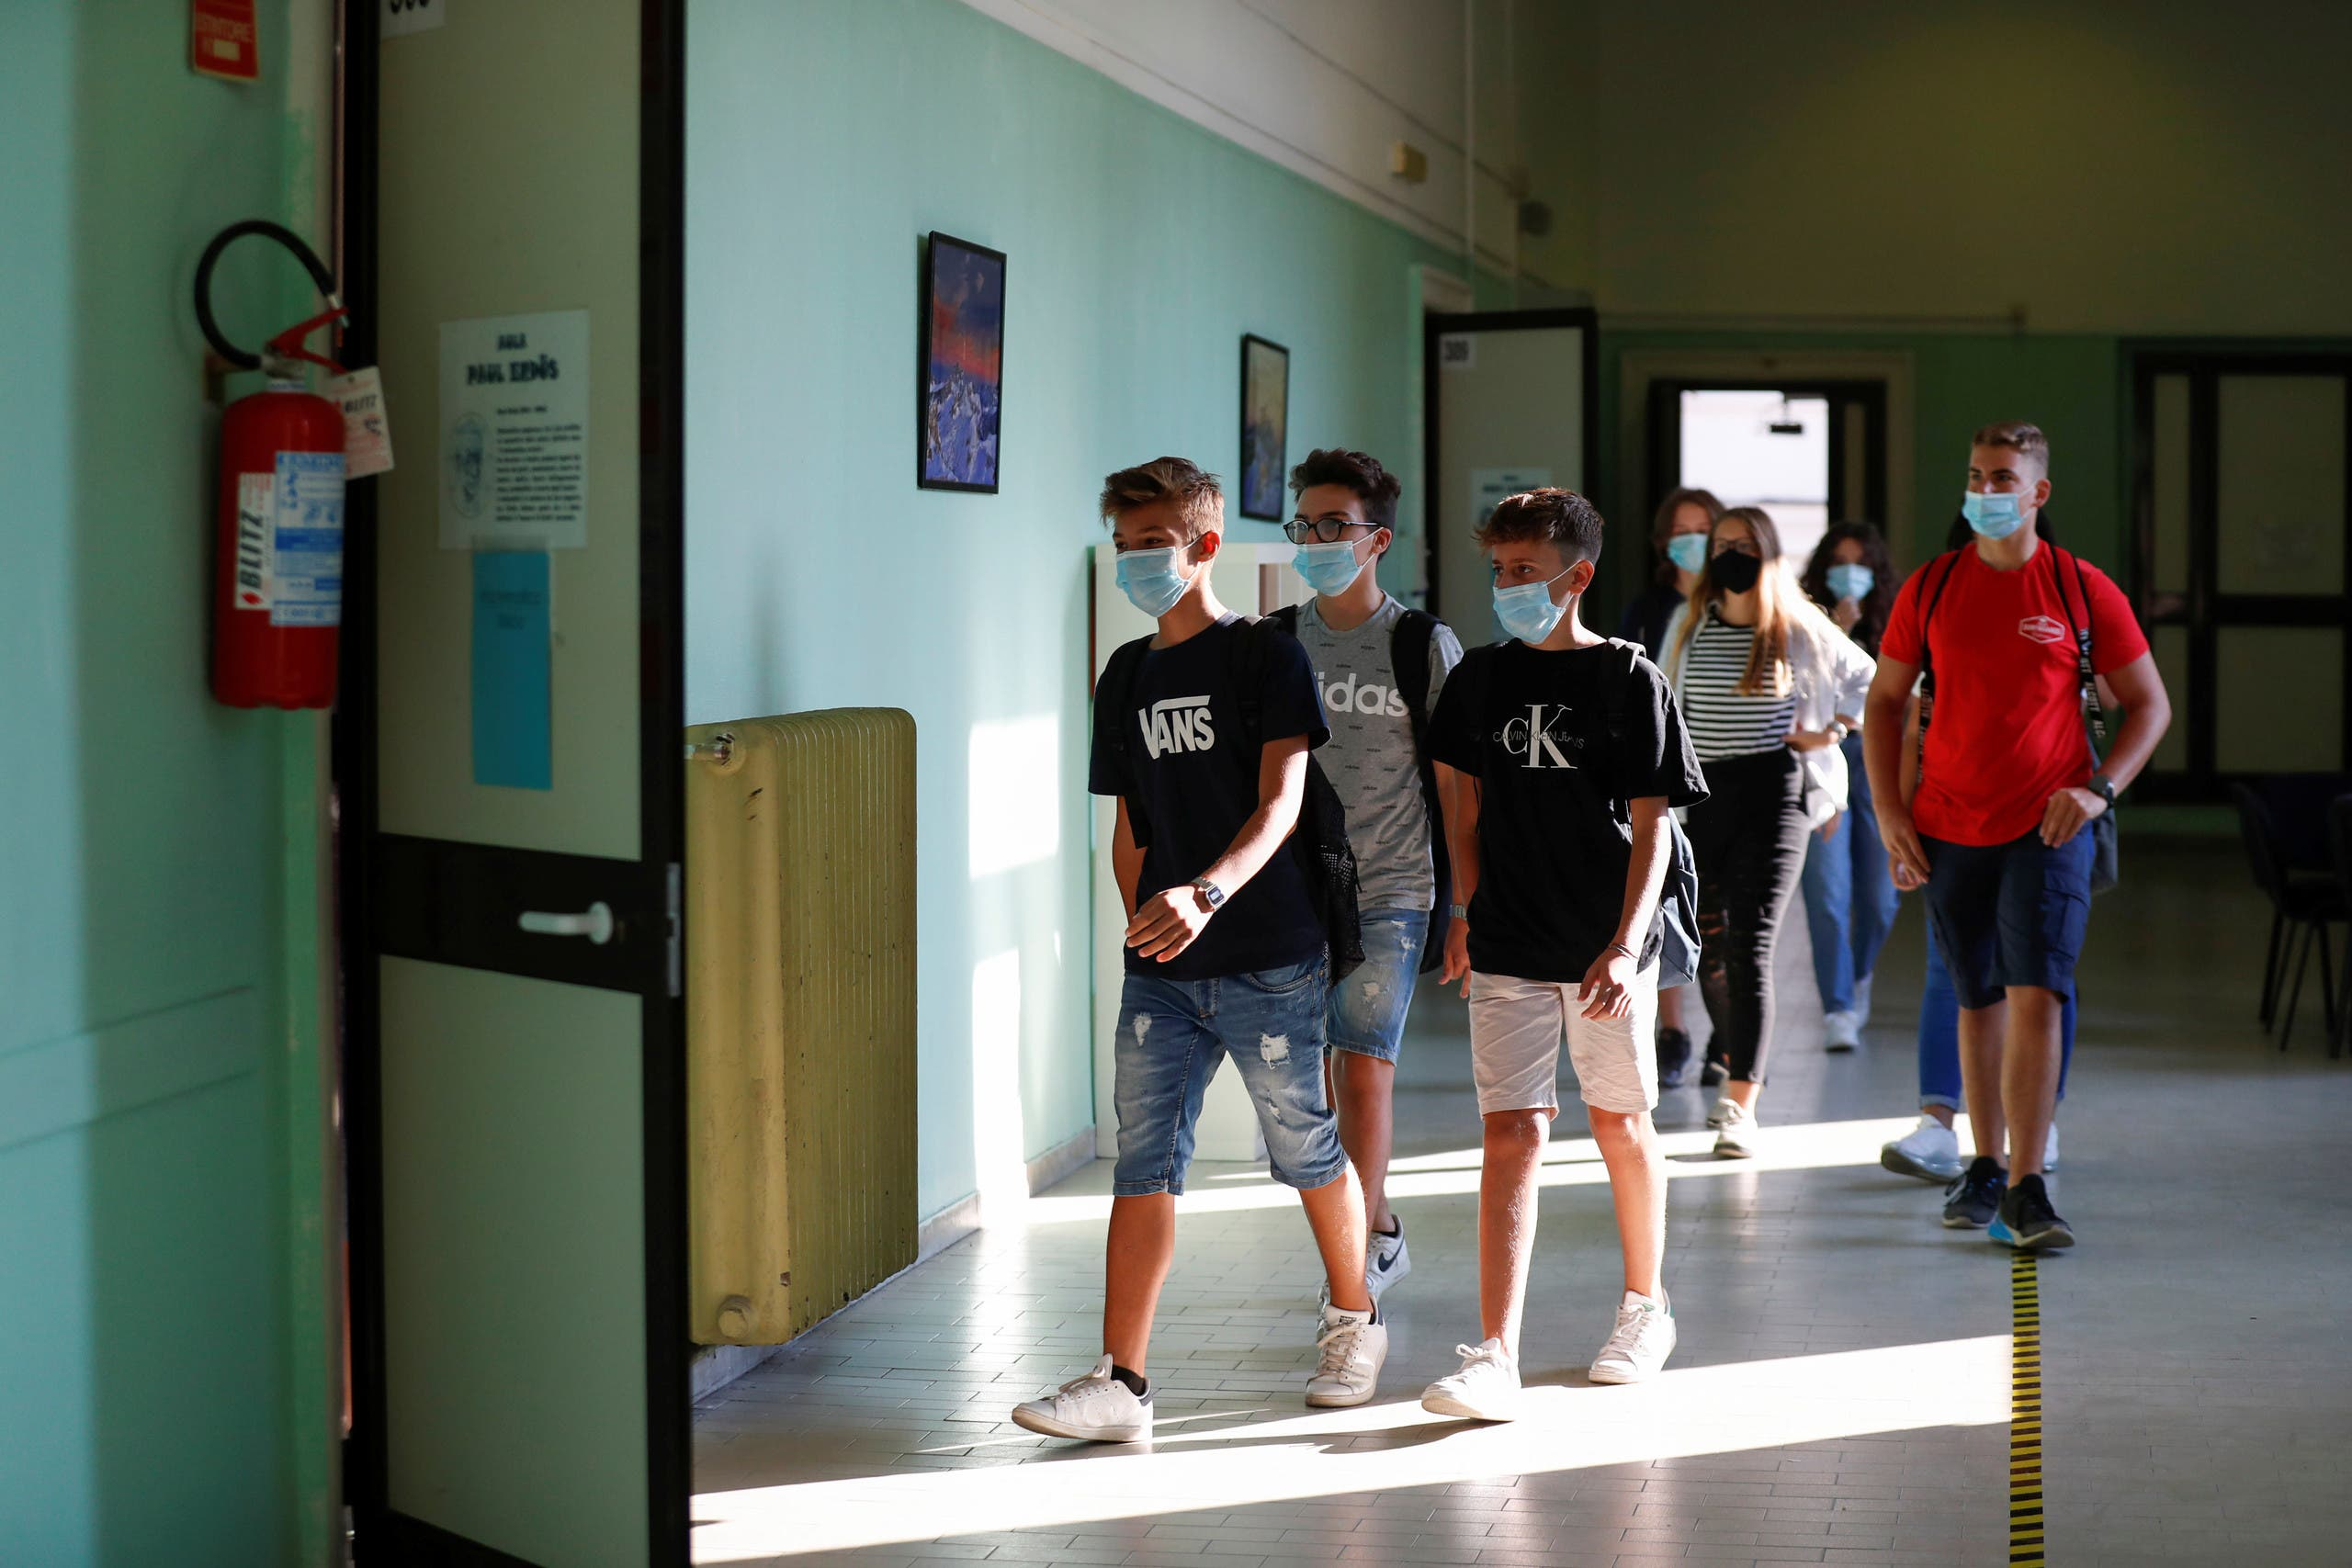 Students wearing protective face masks return to school. (File photo: Reuters)